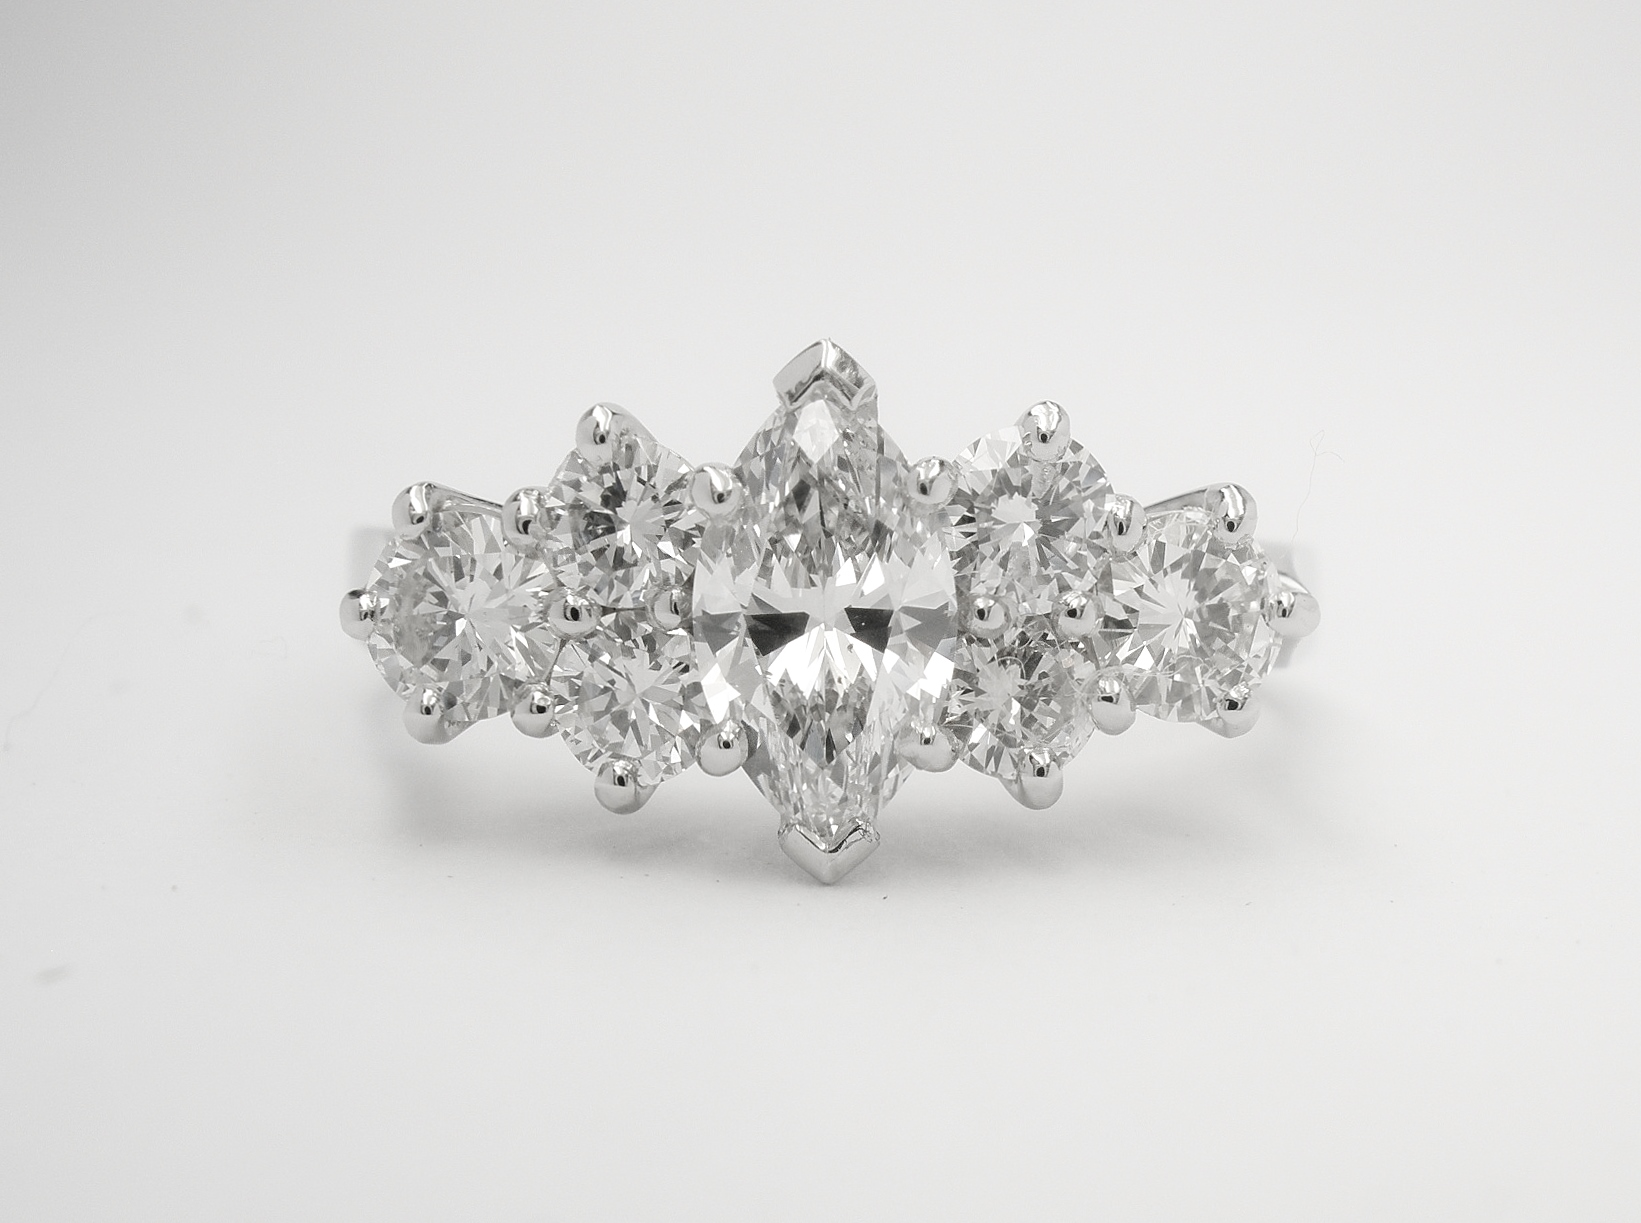 A central marquise diamond flanked on either side with a trefoil of round brilliant cut diamond creating a 7 stone ring mounted in platinum.